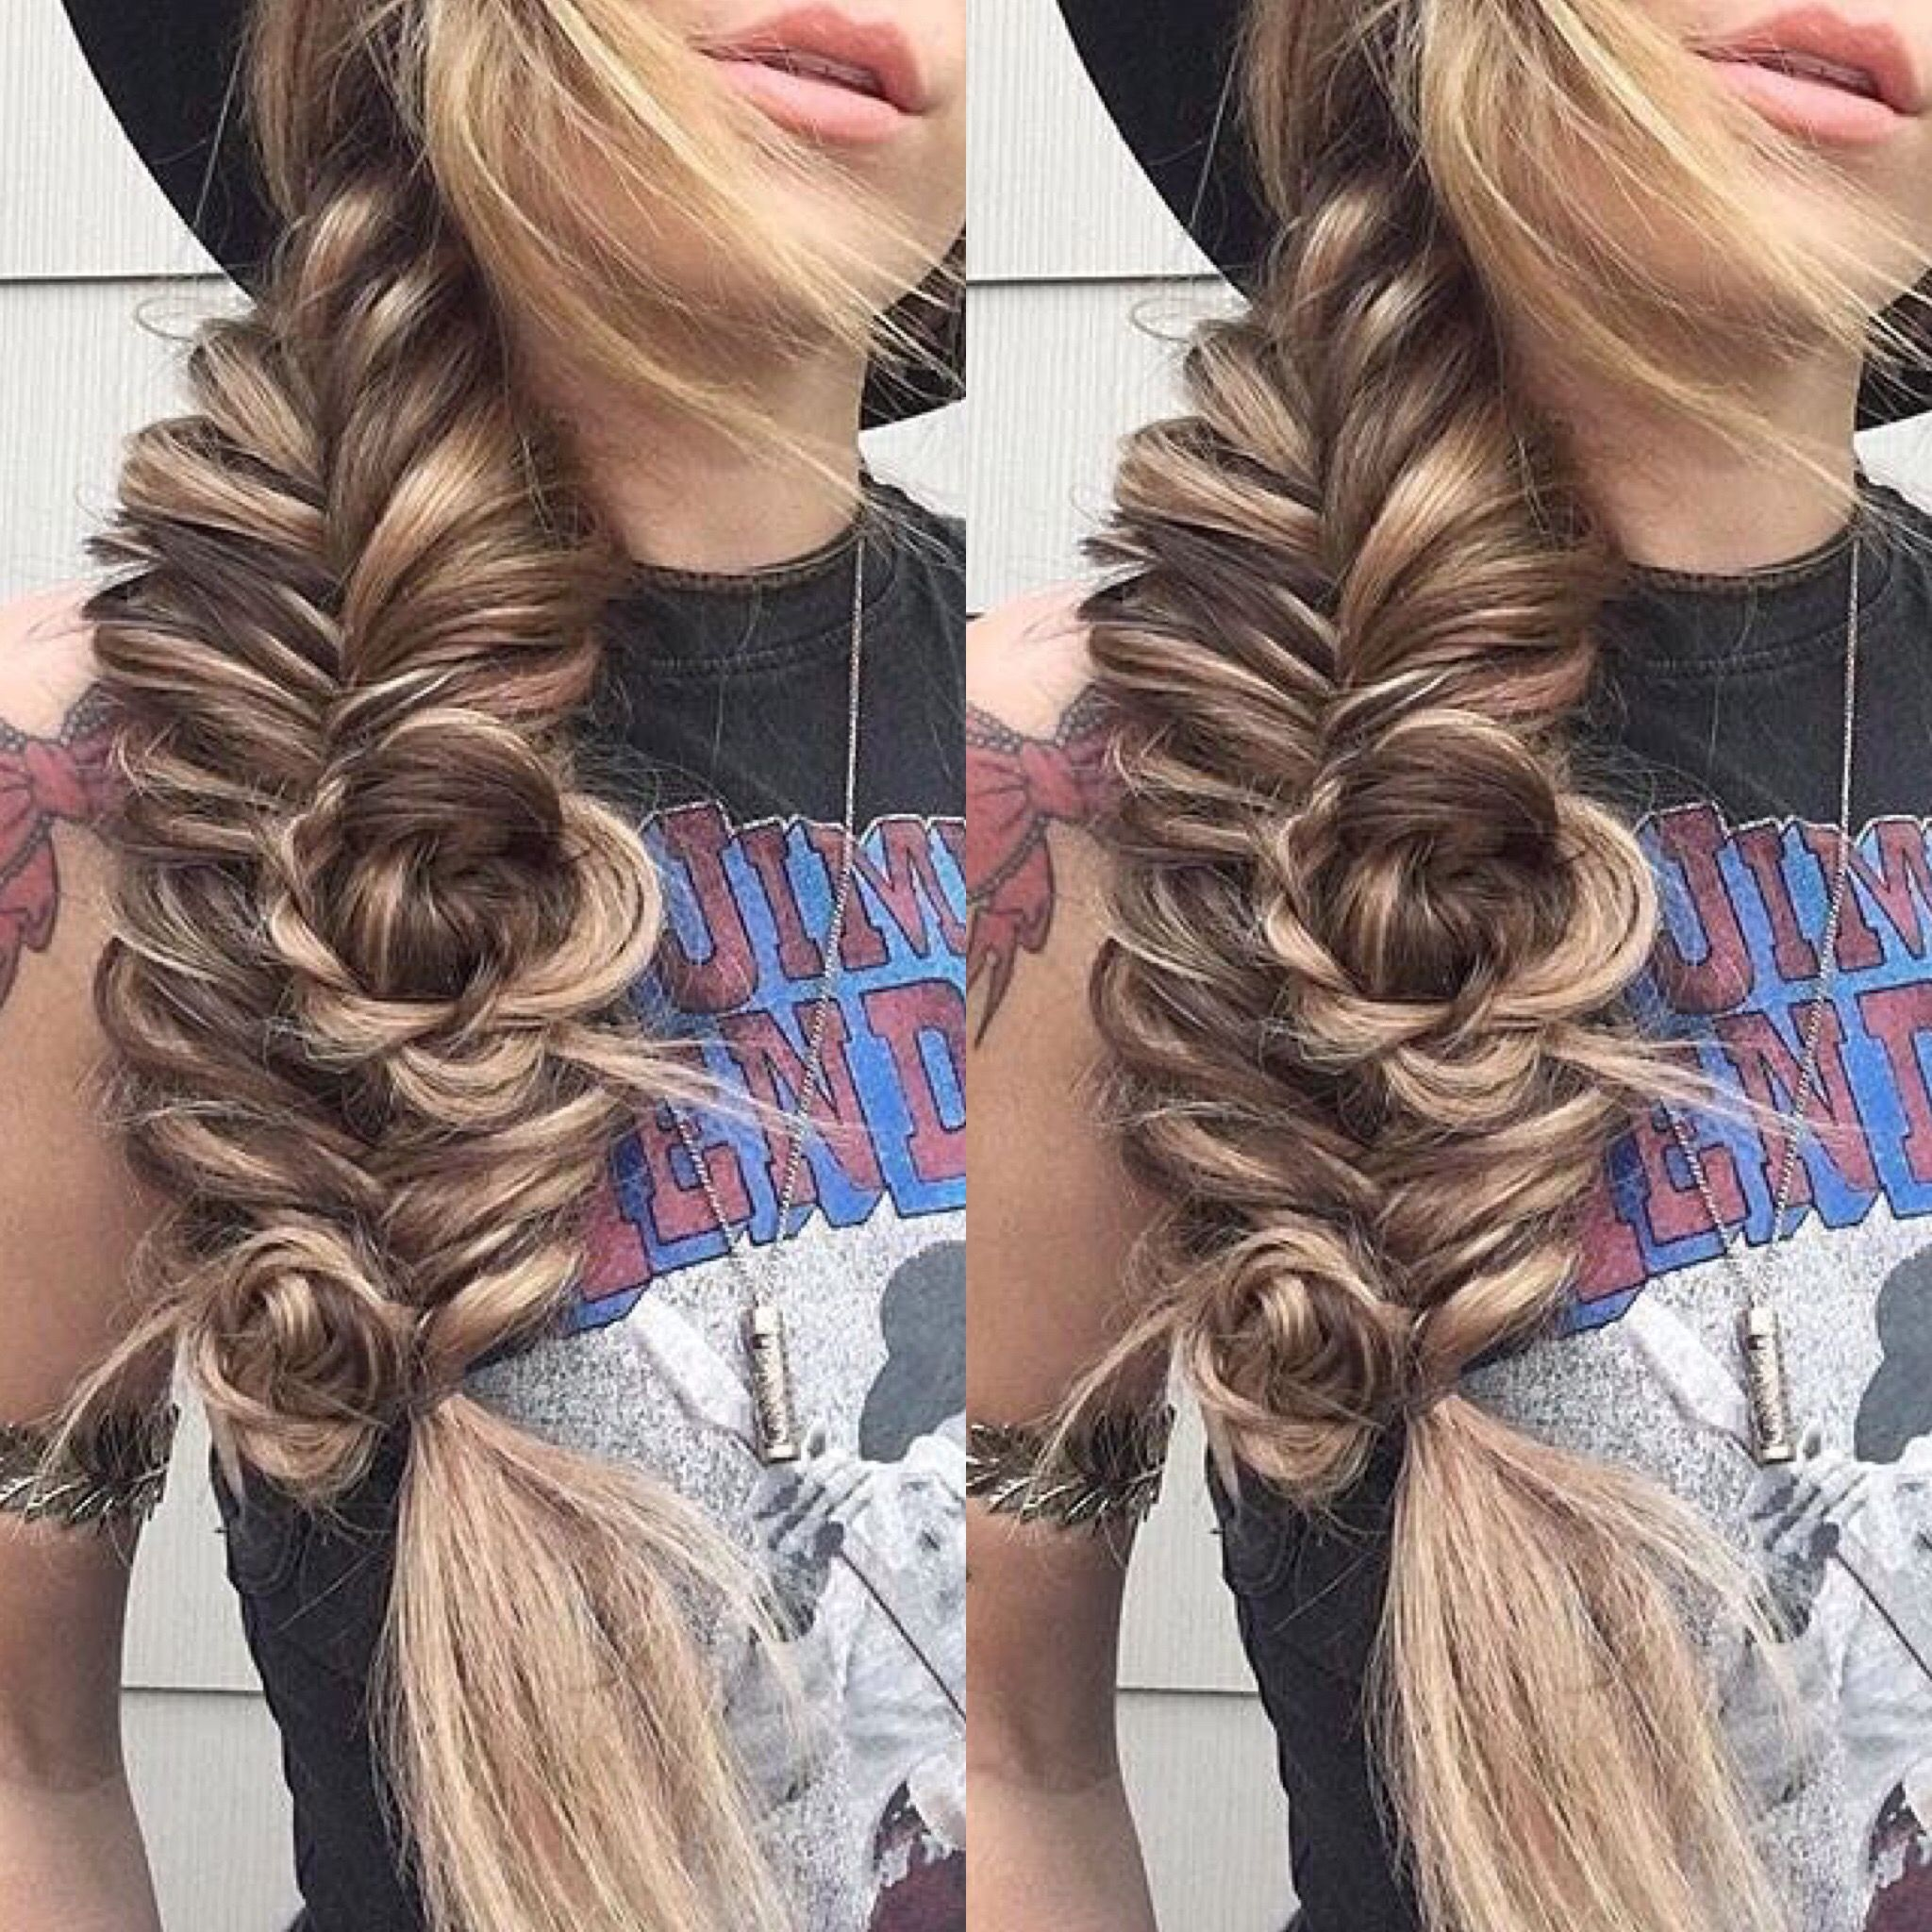 This braid longer fuller hair instantly using natural hair longer fuller hair instantly using natural hair extensions pmusecretfo Image collections